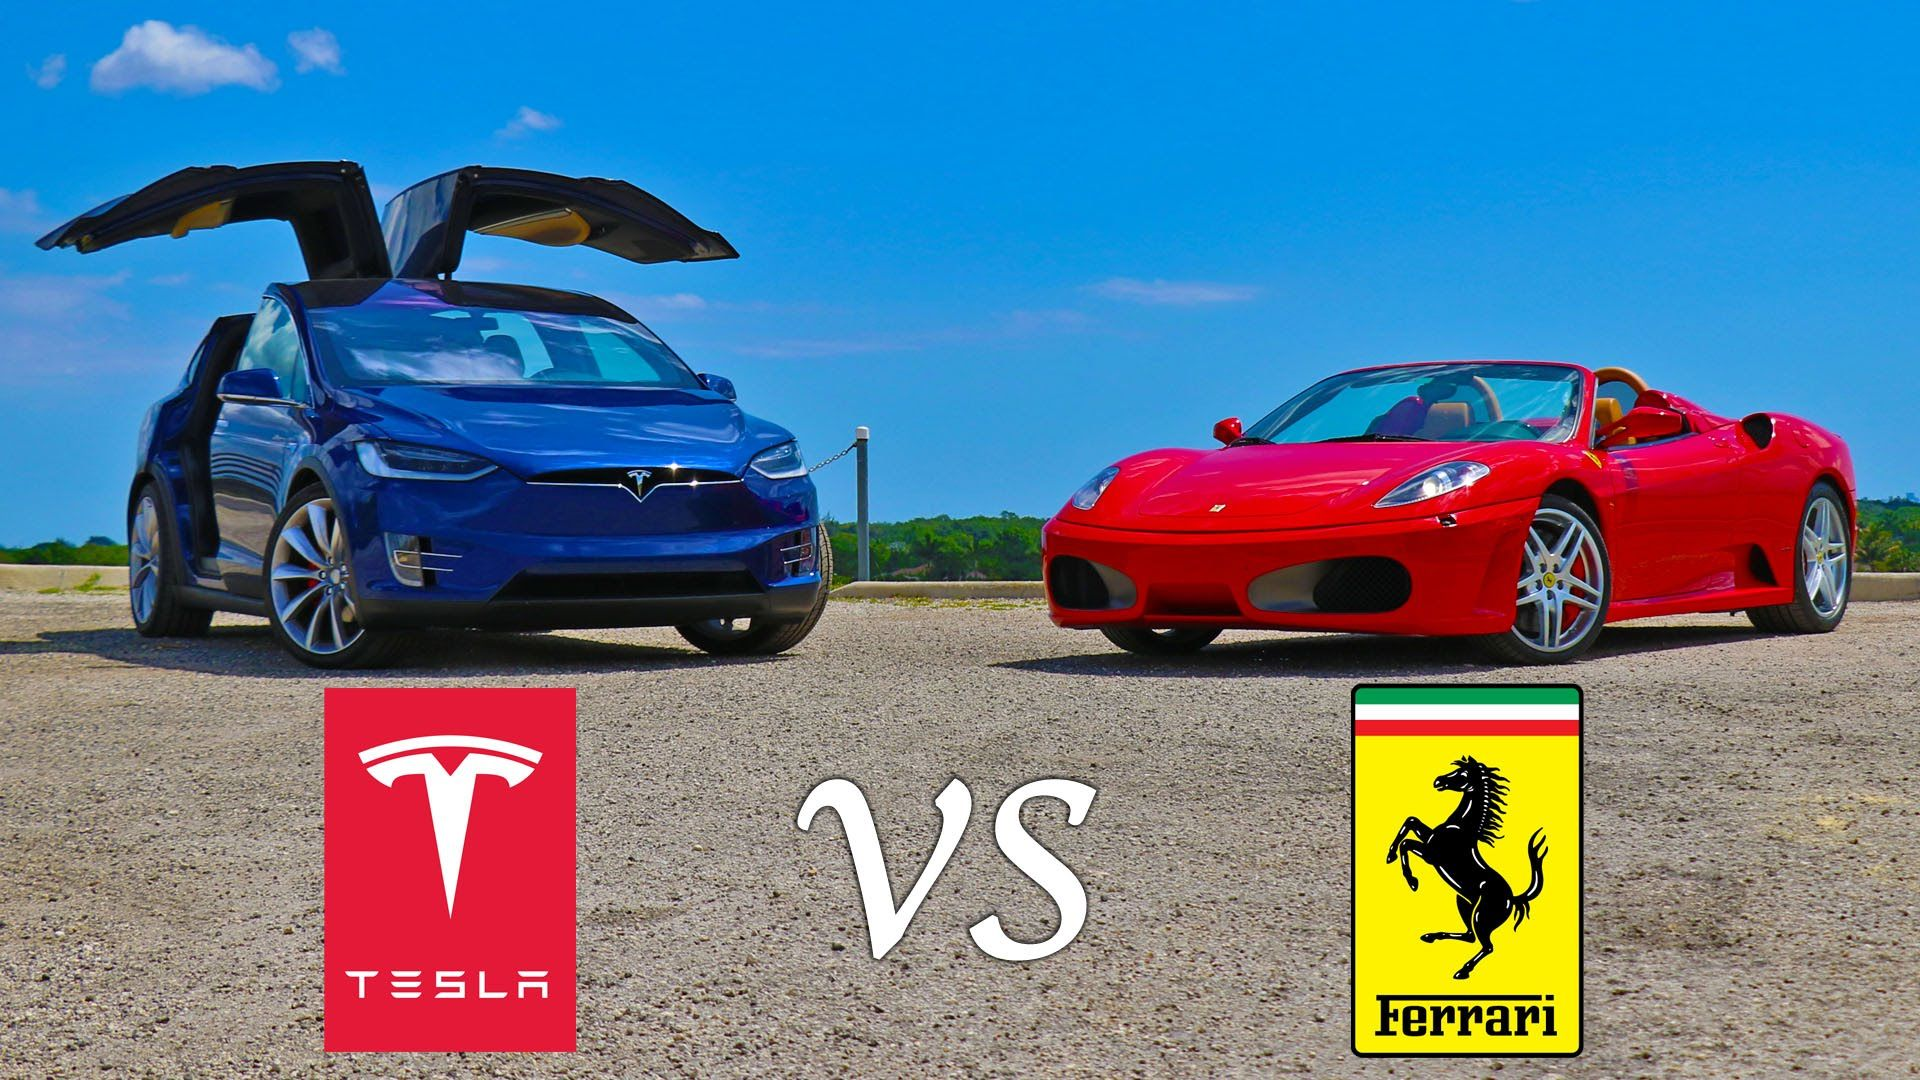 Tesla Model X P90d Ludicrous Vs Ferrari F430 Drag Racing And Roll Racing Tesla Model X Ferrari F430 Spider Tesla